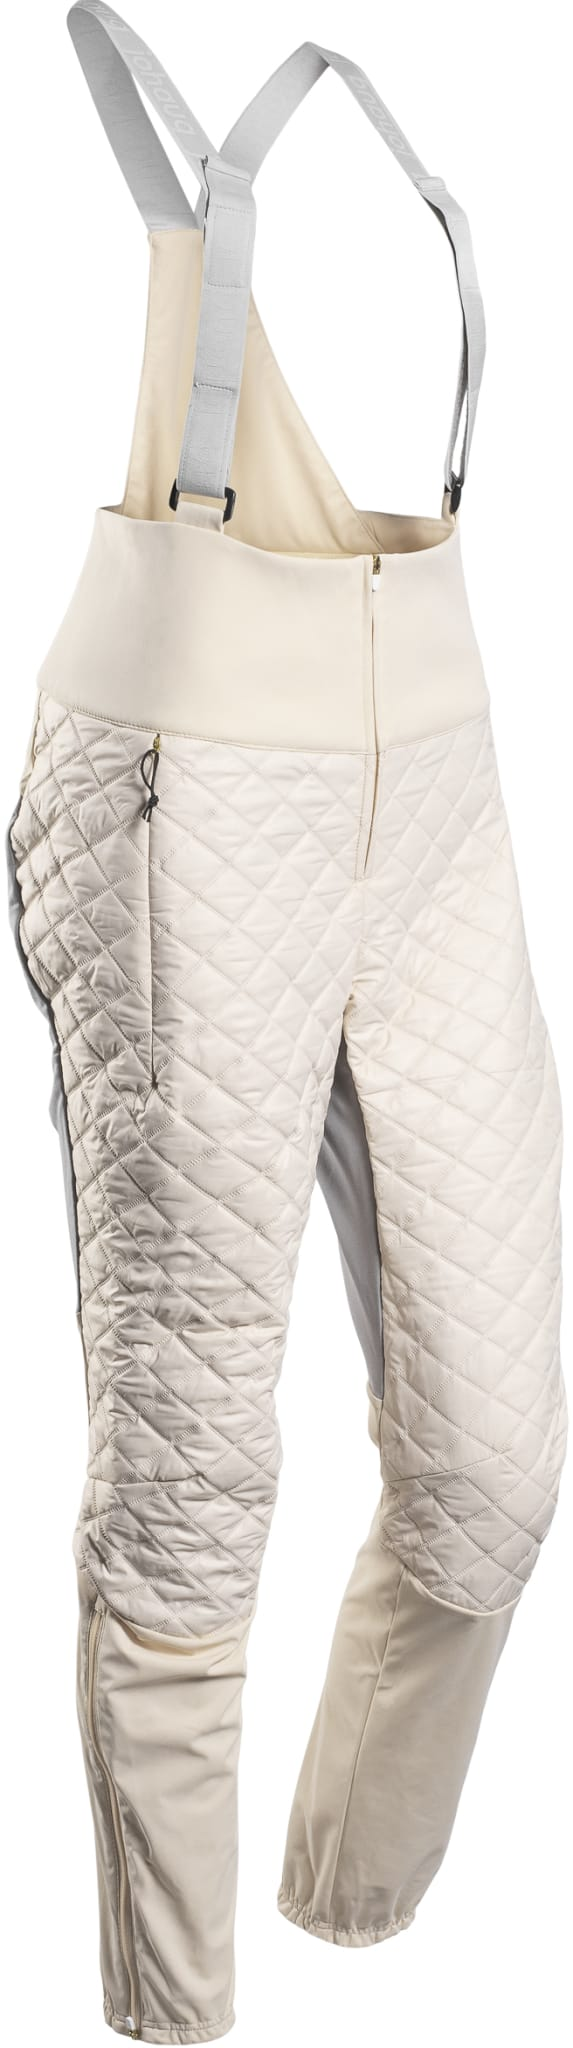 Advance Primaloft Pants